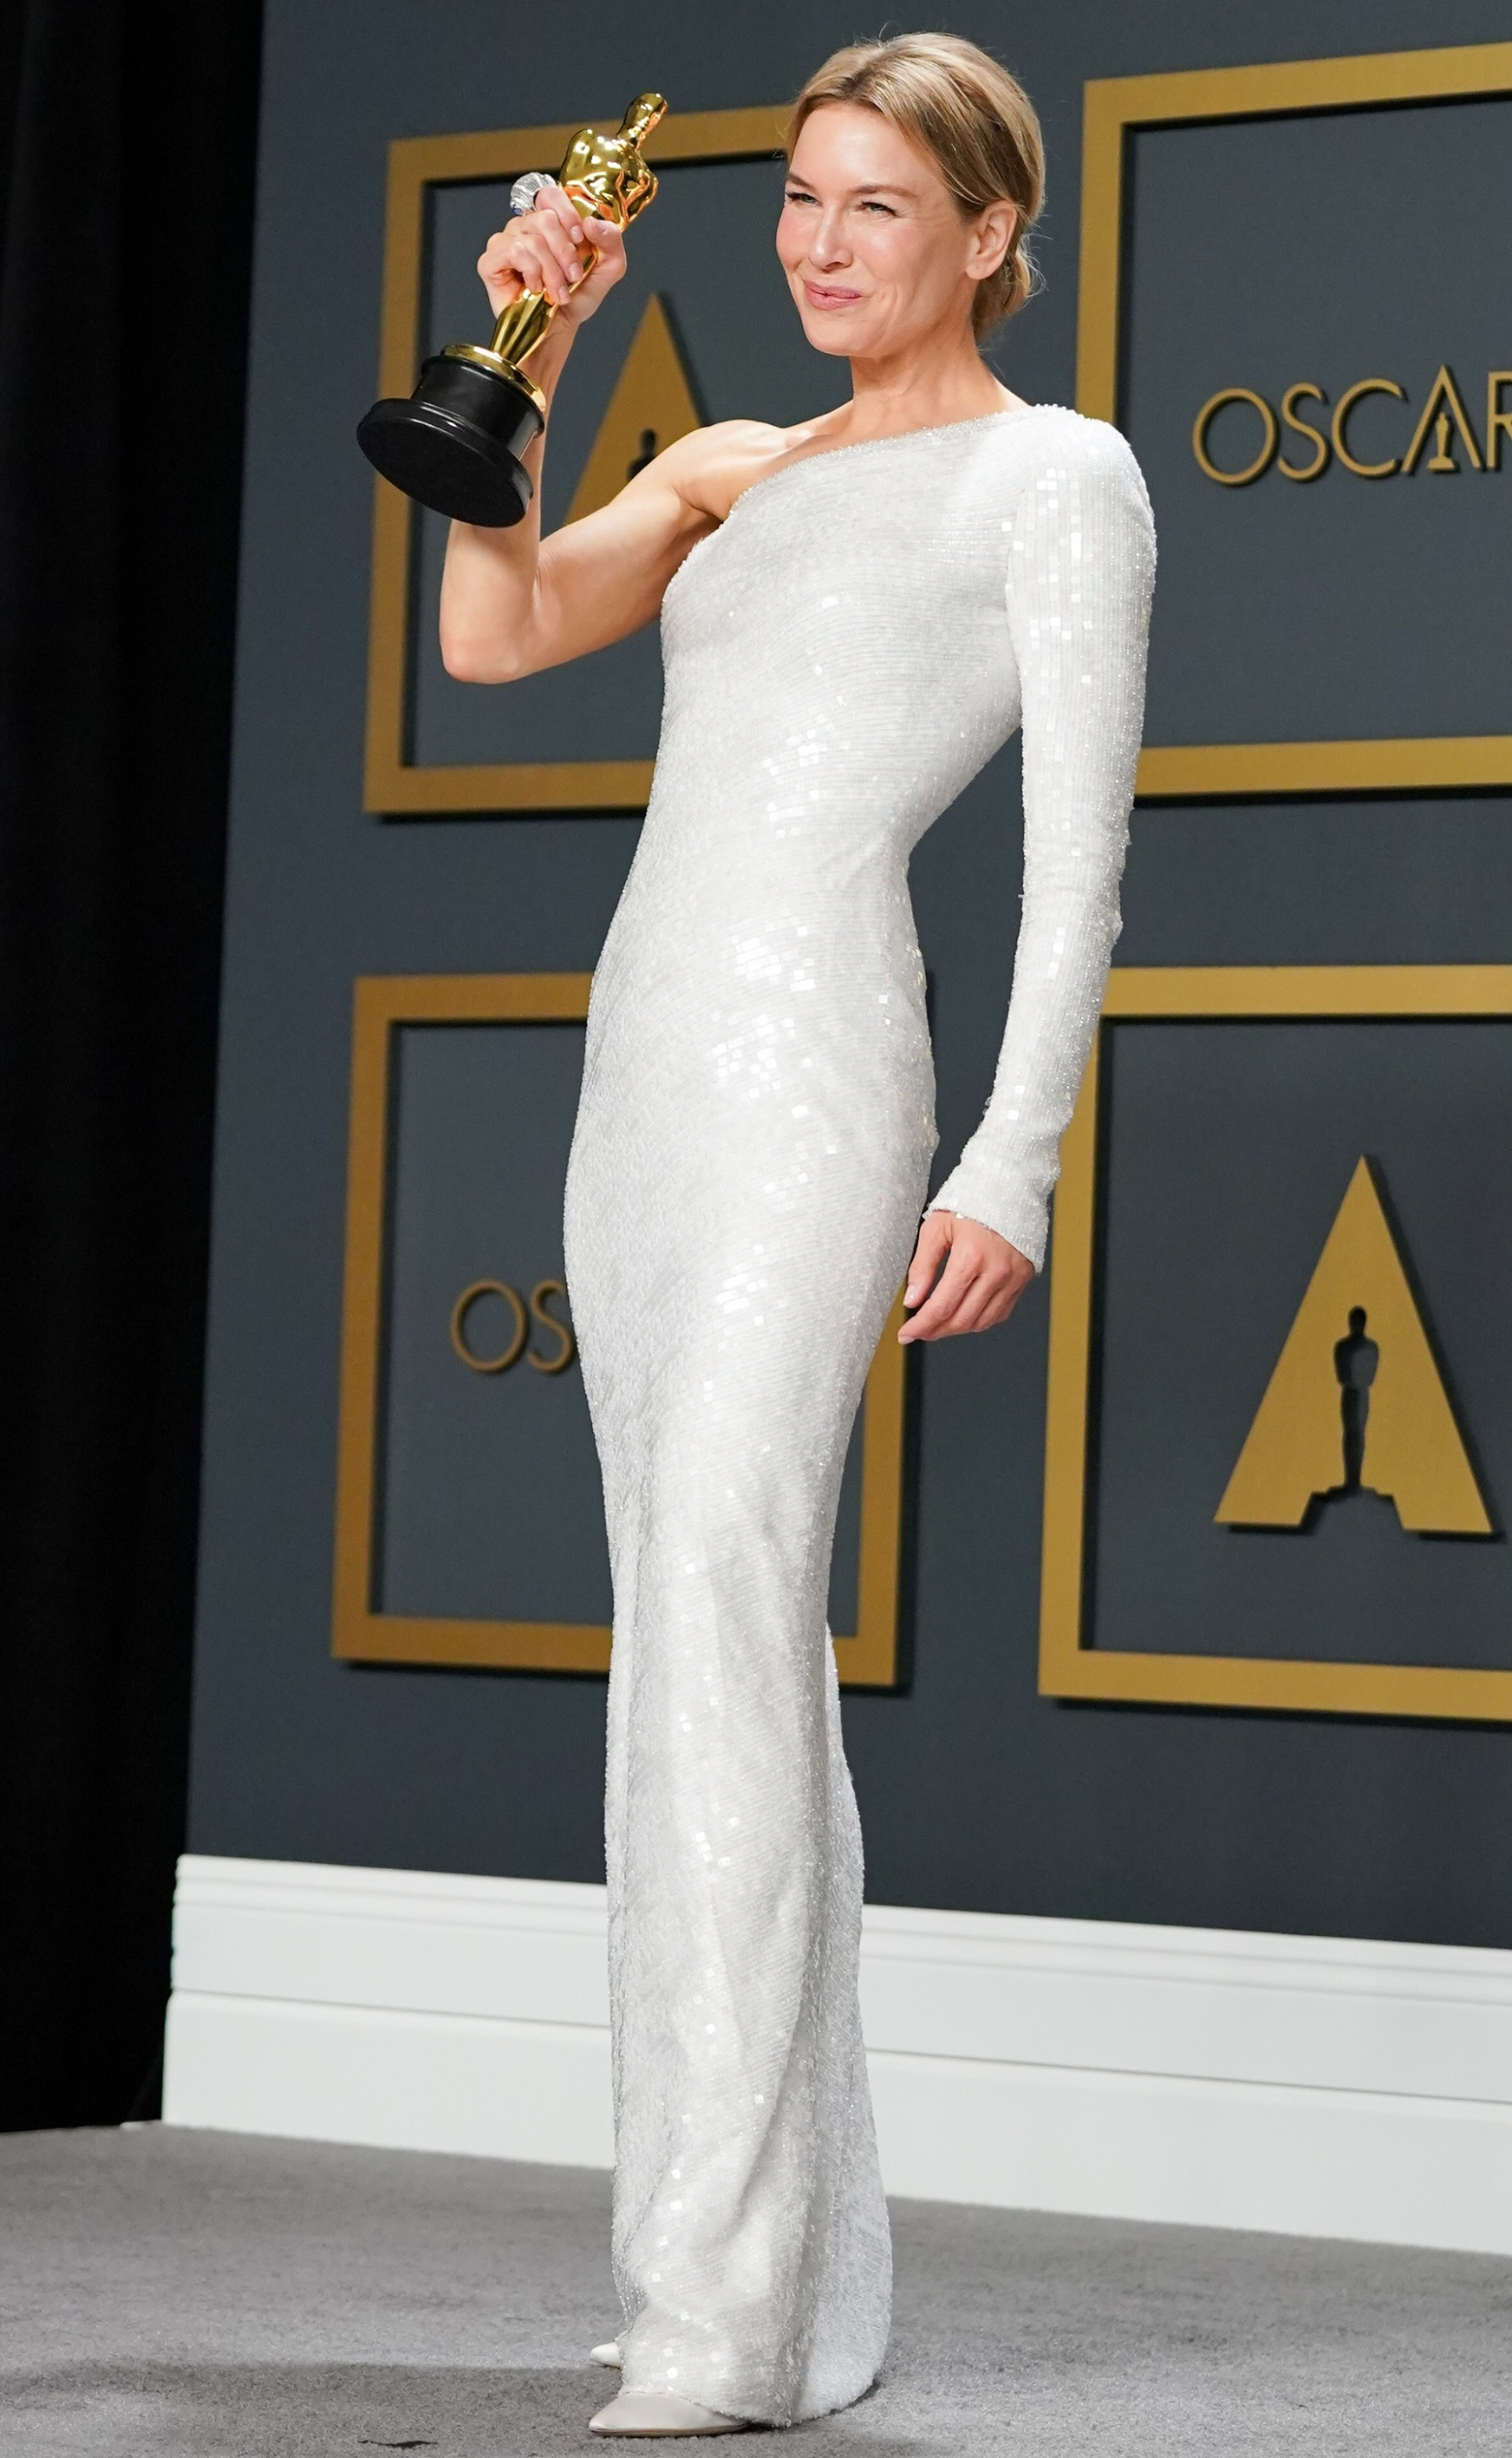 HOLLYWOOD, CALIFORNIA - FEBRUARY 09: Renée Zellweger, winner of the Actress in a Leading Role award for